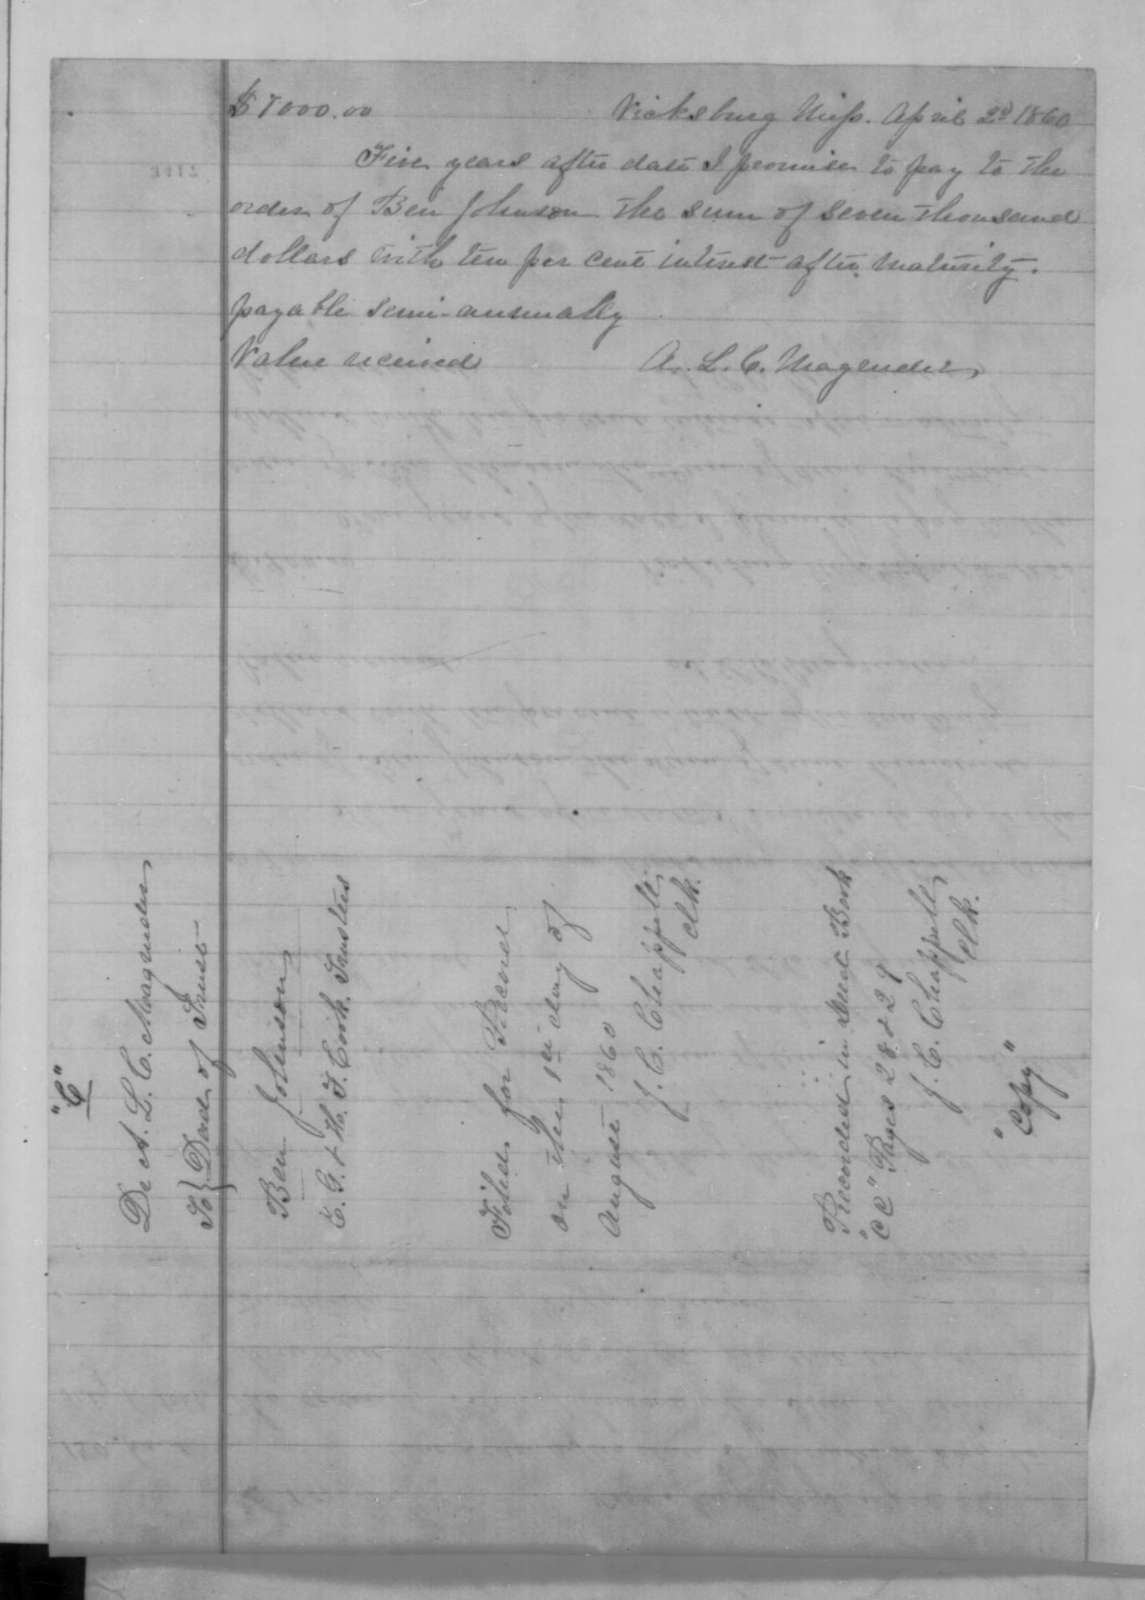 A. L. C. Magruder and Maria Louisa Magruder, Wednesday, August 29, 1860  (Extract of deed)